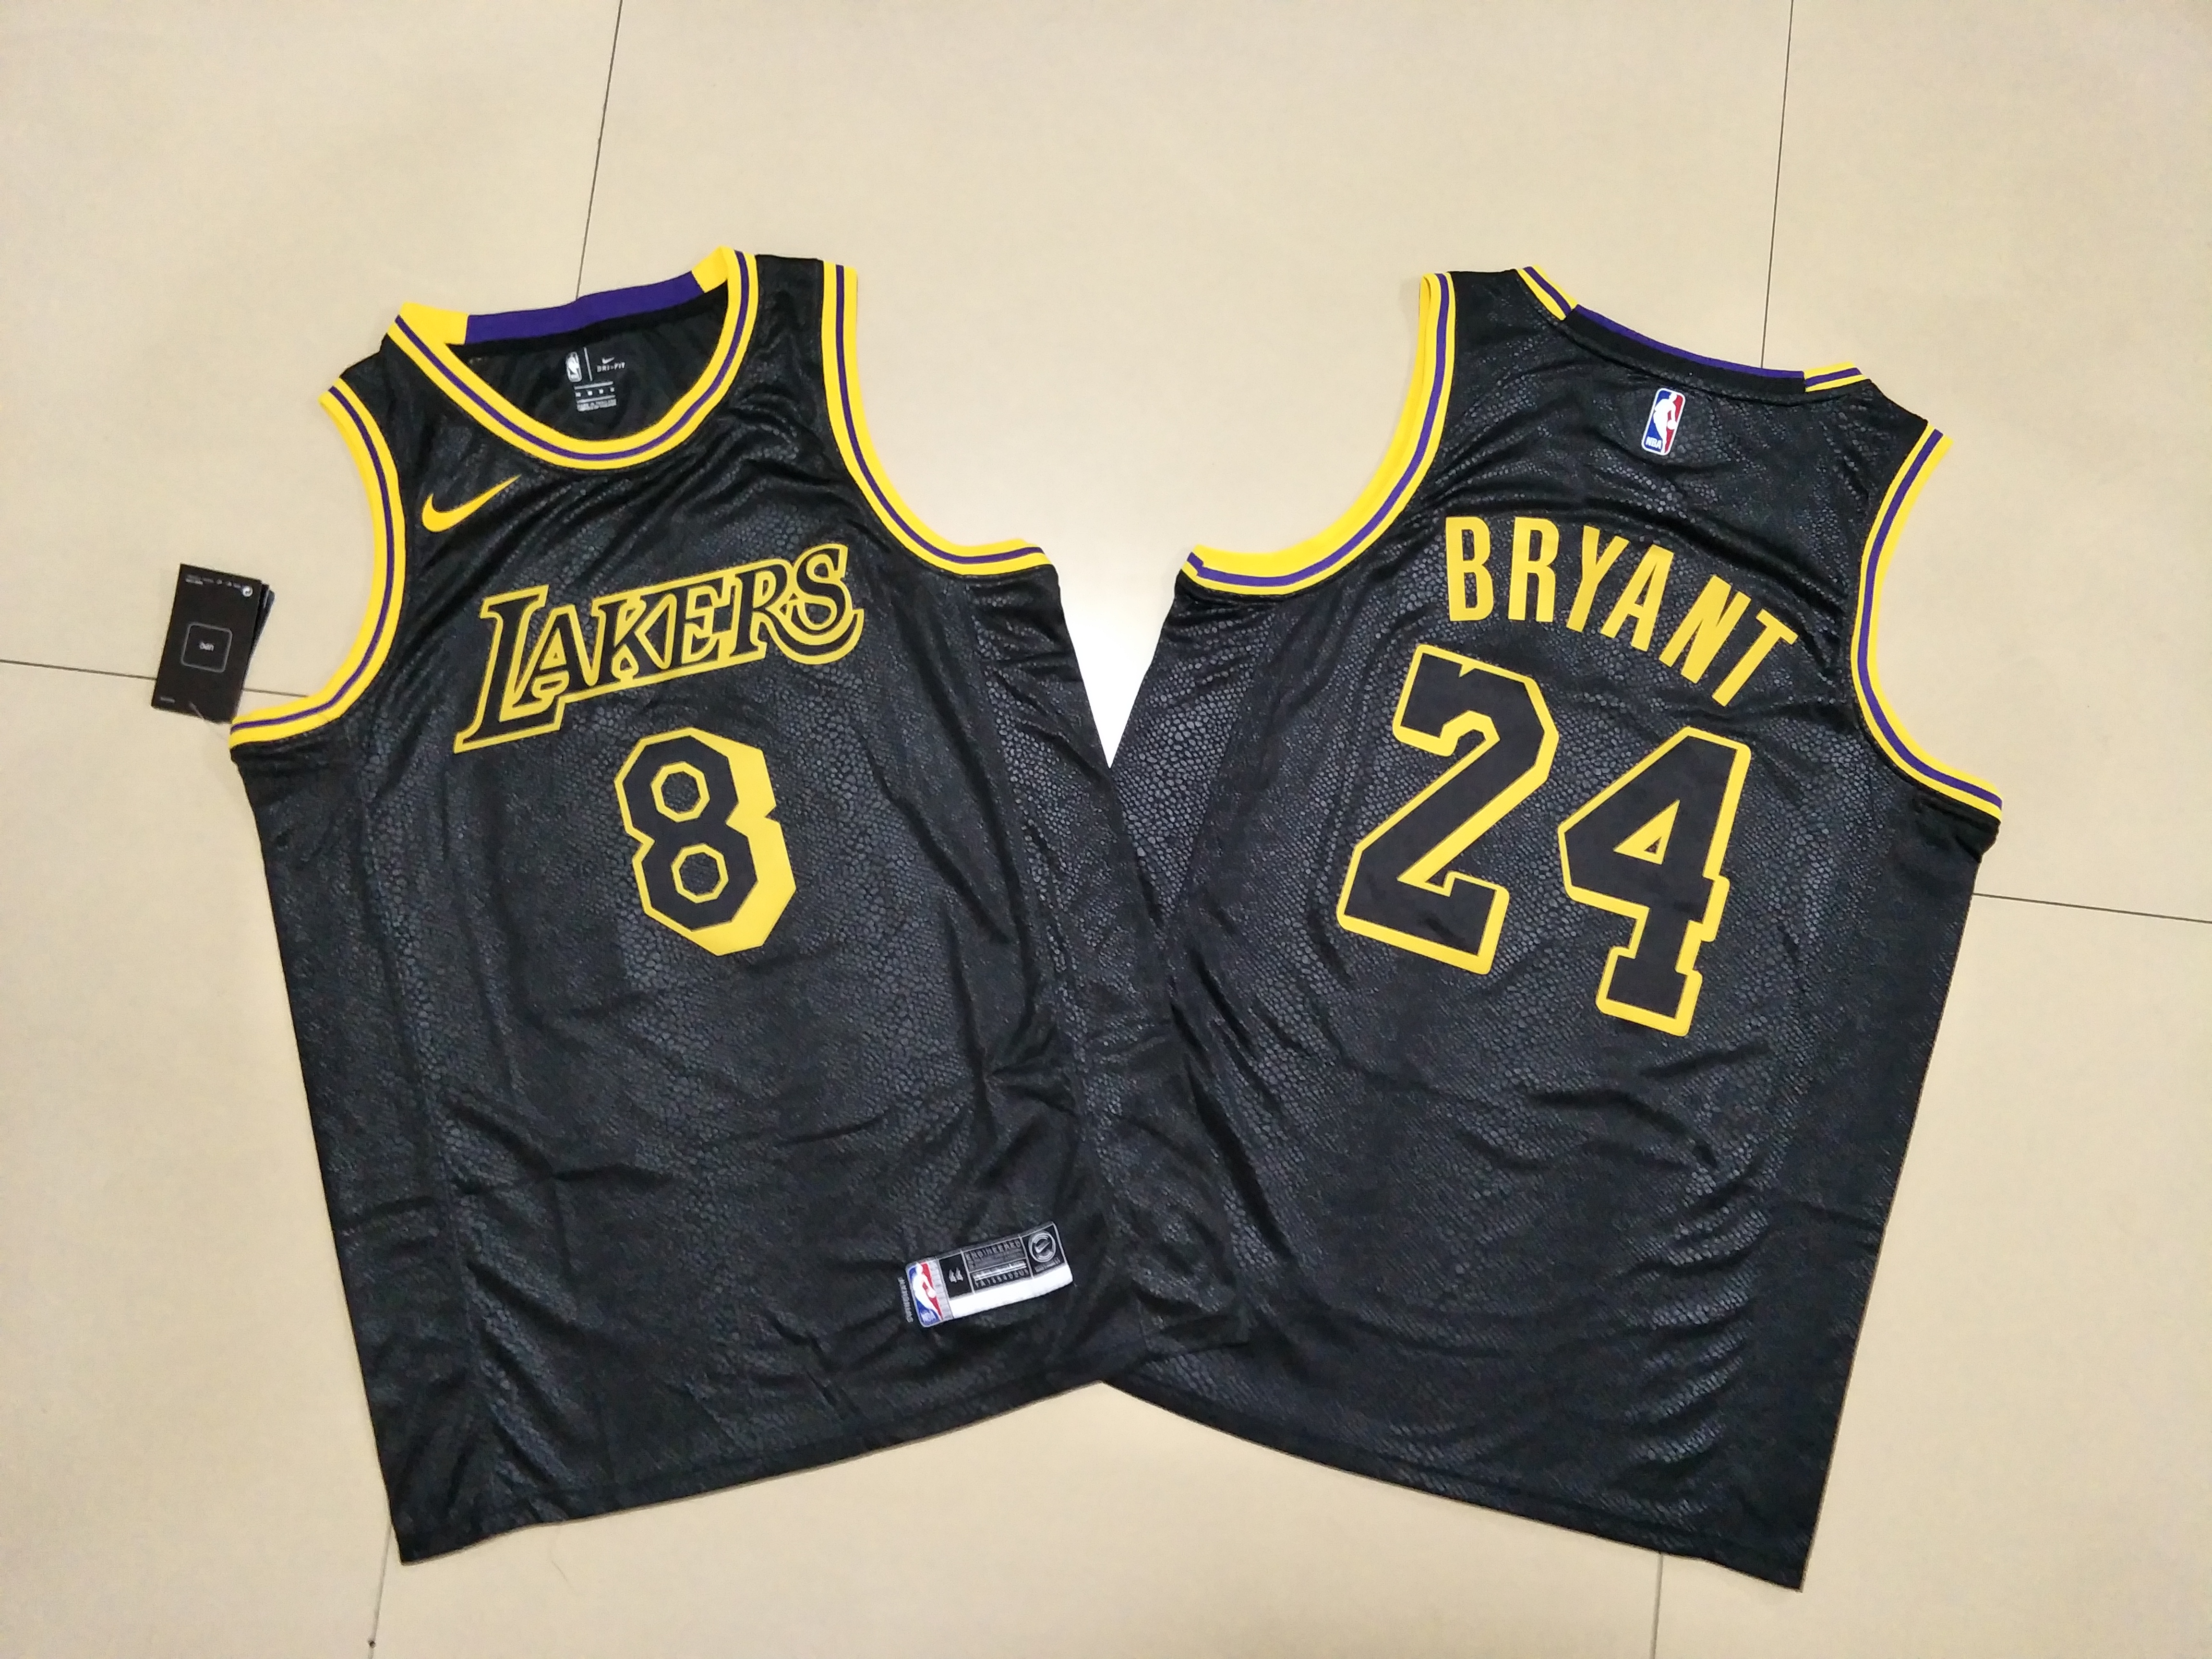 Lakers 8 & 24 Kobe Bryant Black Commemorative Swingman Jersey